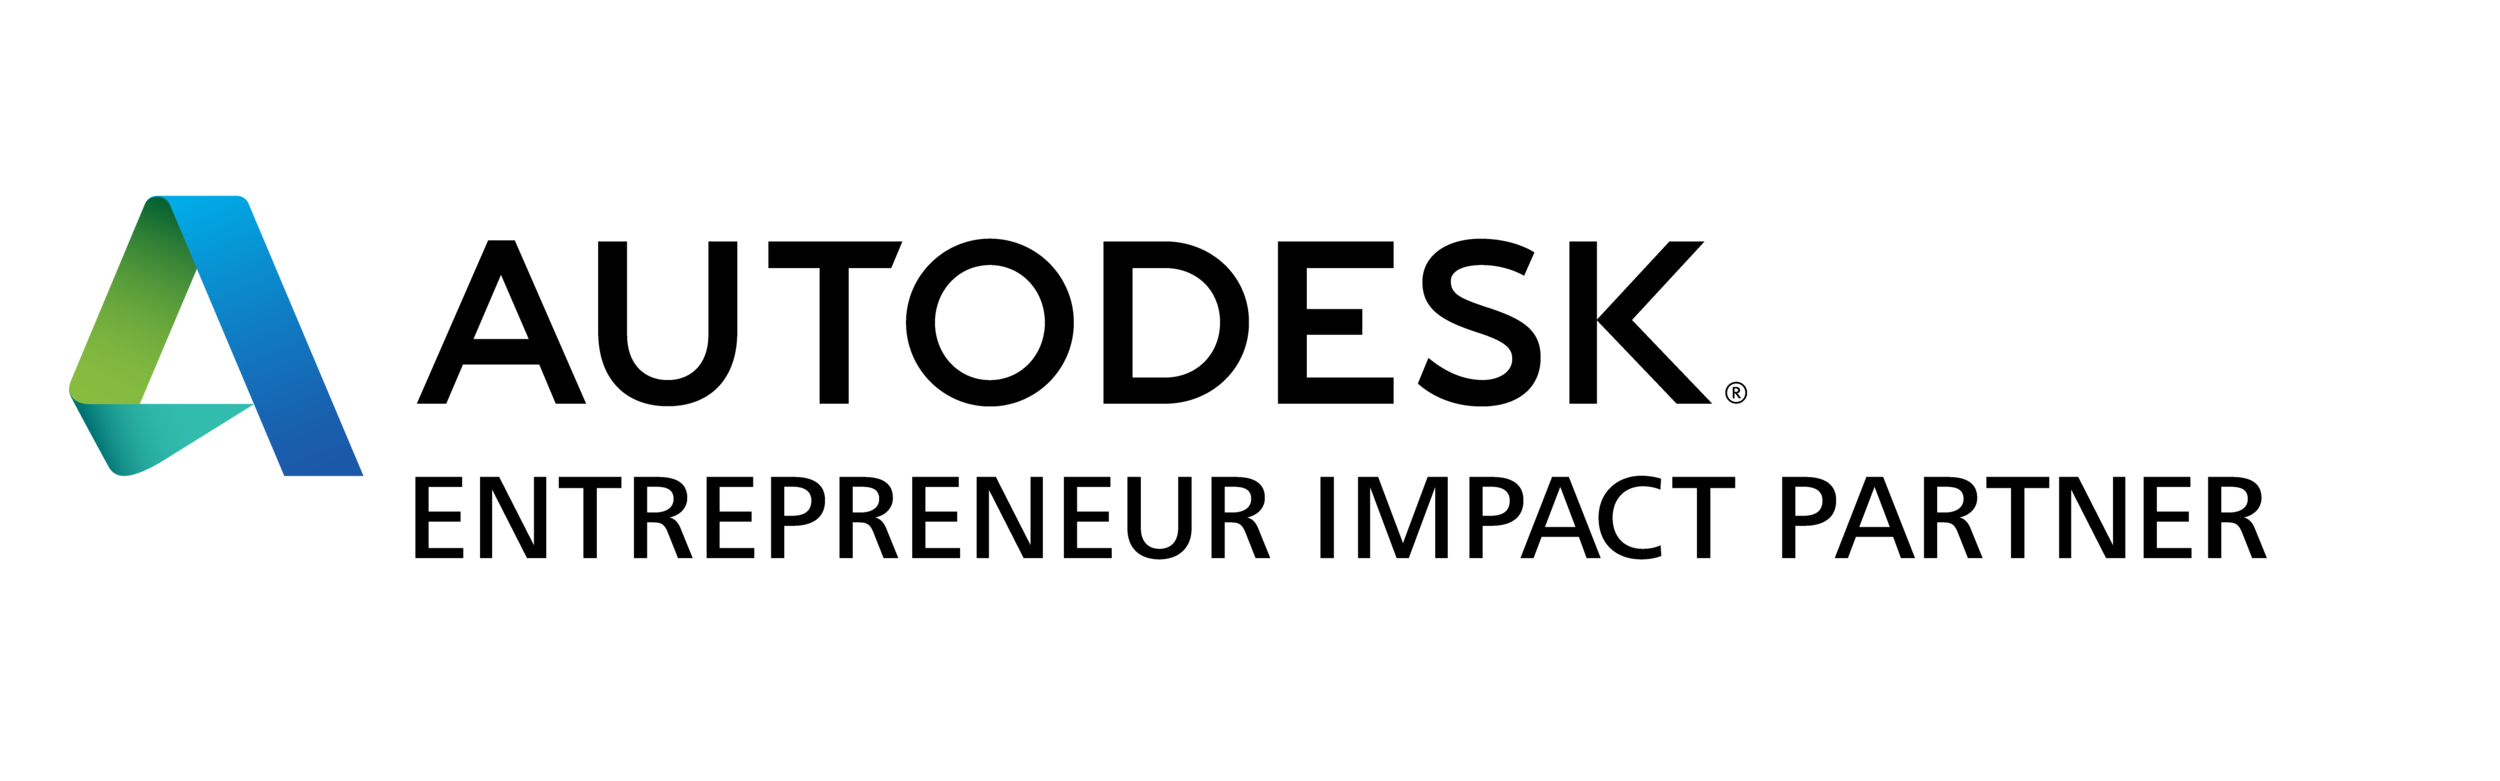 entrepreneur-impact-partner-logo-color-text-black-screen.png